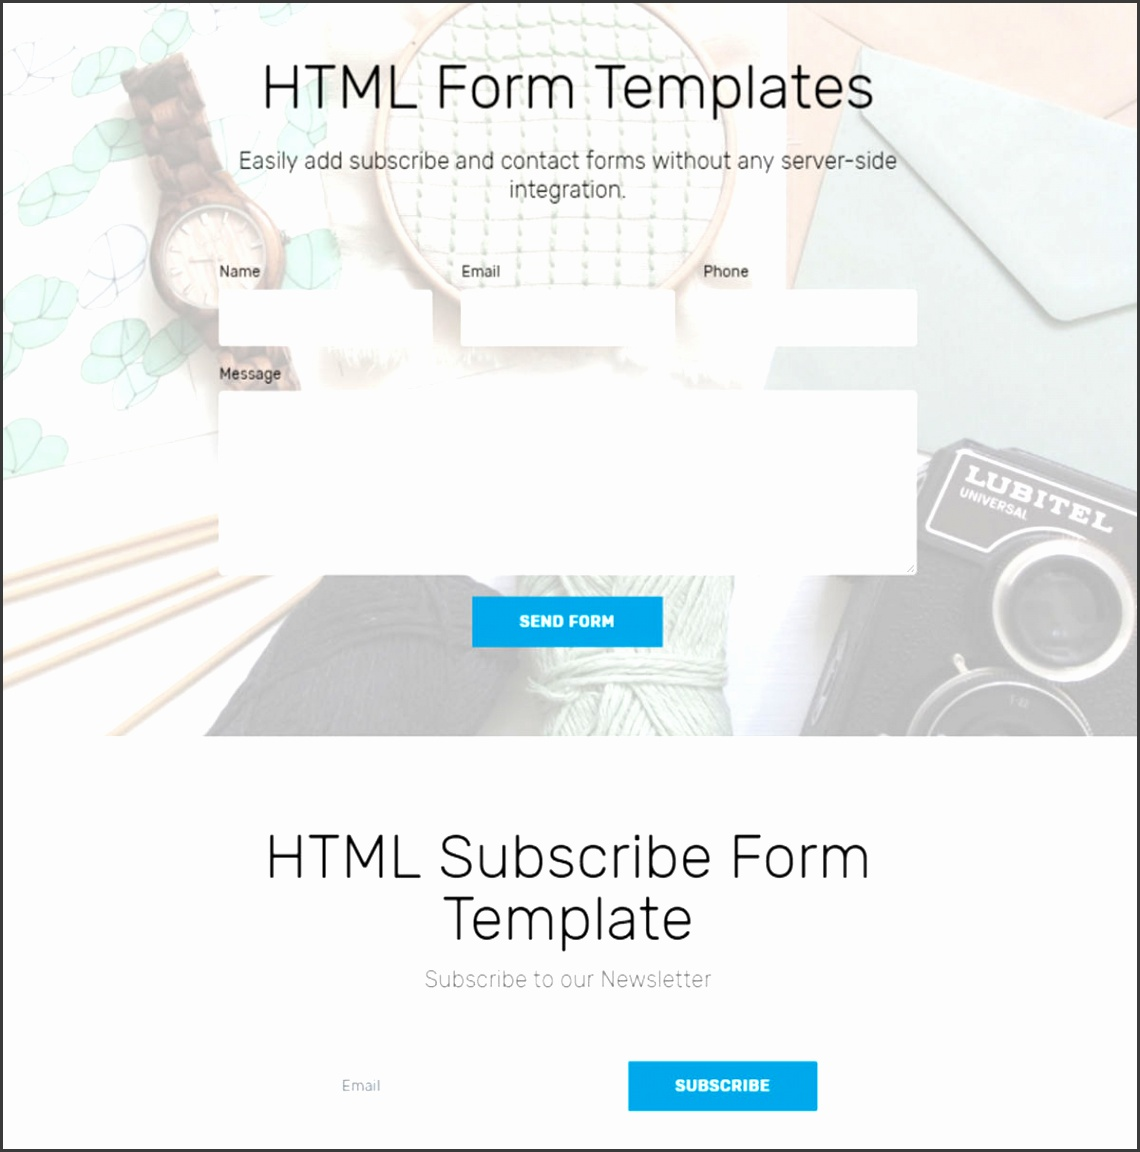 mobile site template free download - 6 mobile web form templates download sampletemplatess